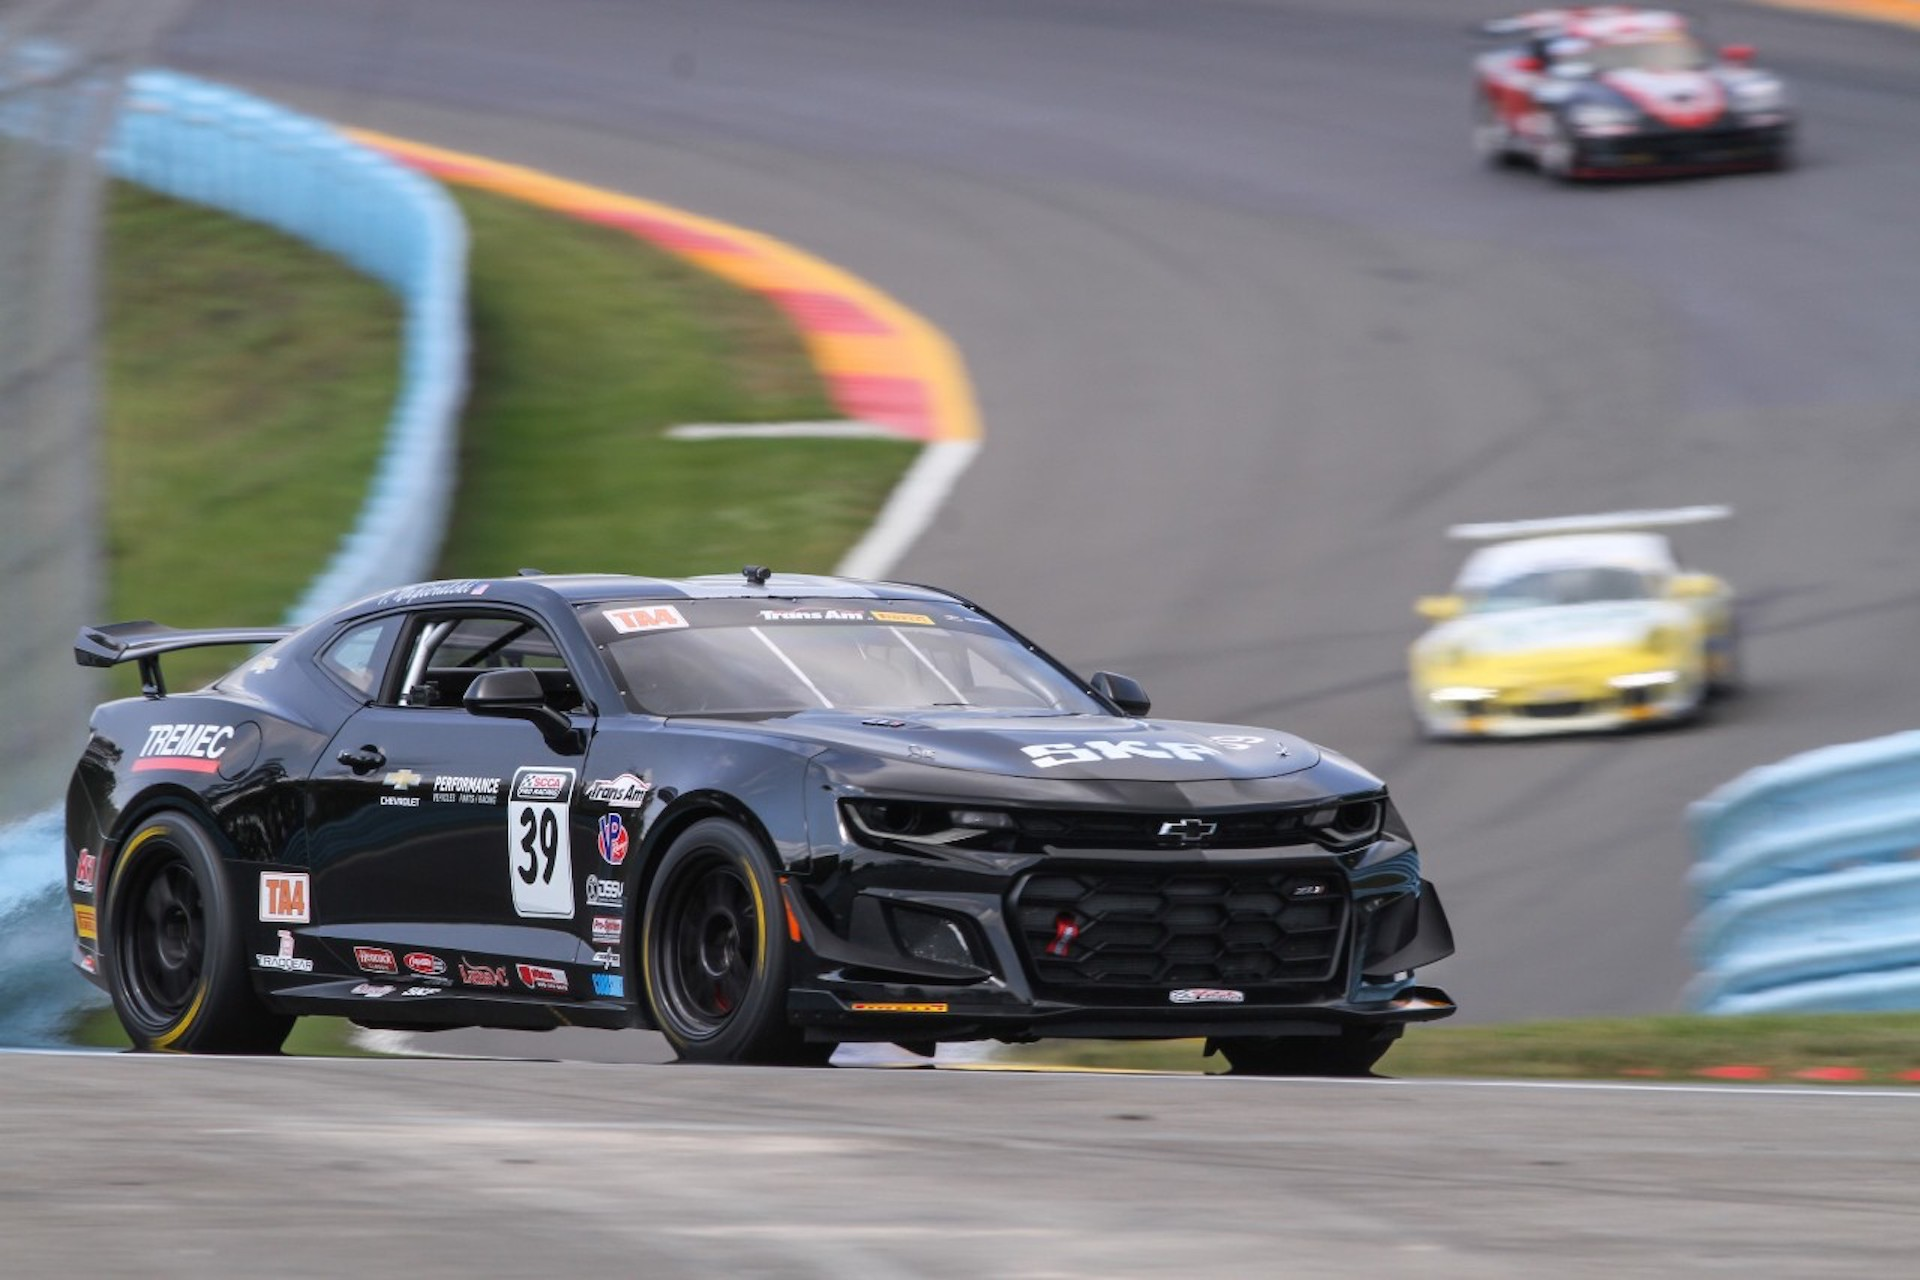 chevy showcases camaro ss trans am race car with zl1 1le parts. Black Bedroom Furniture Sets. Home Design Ideas